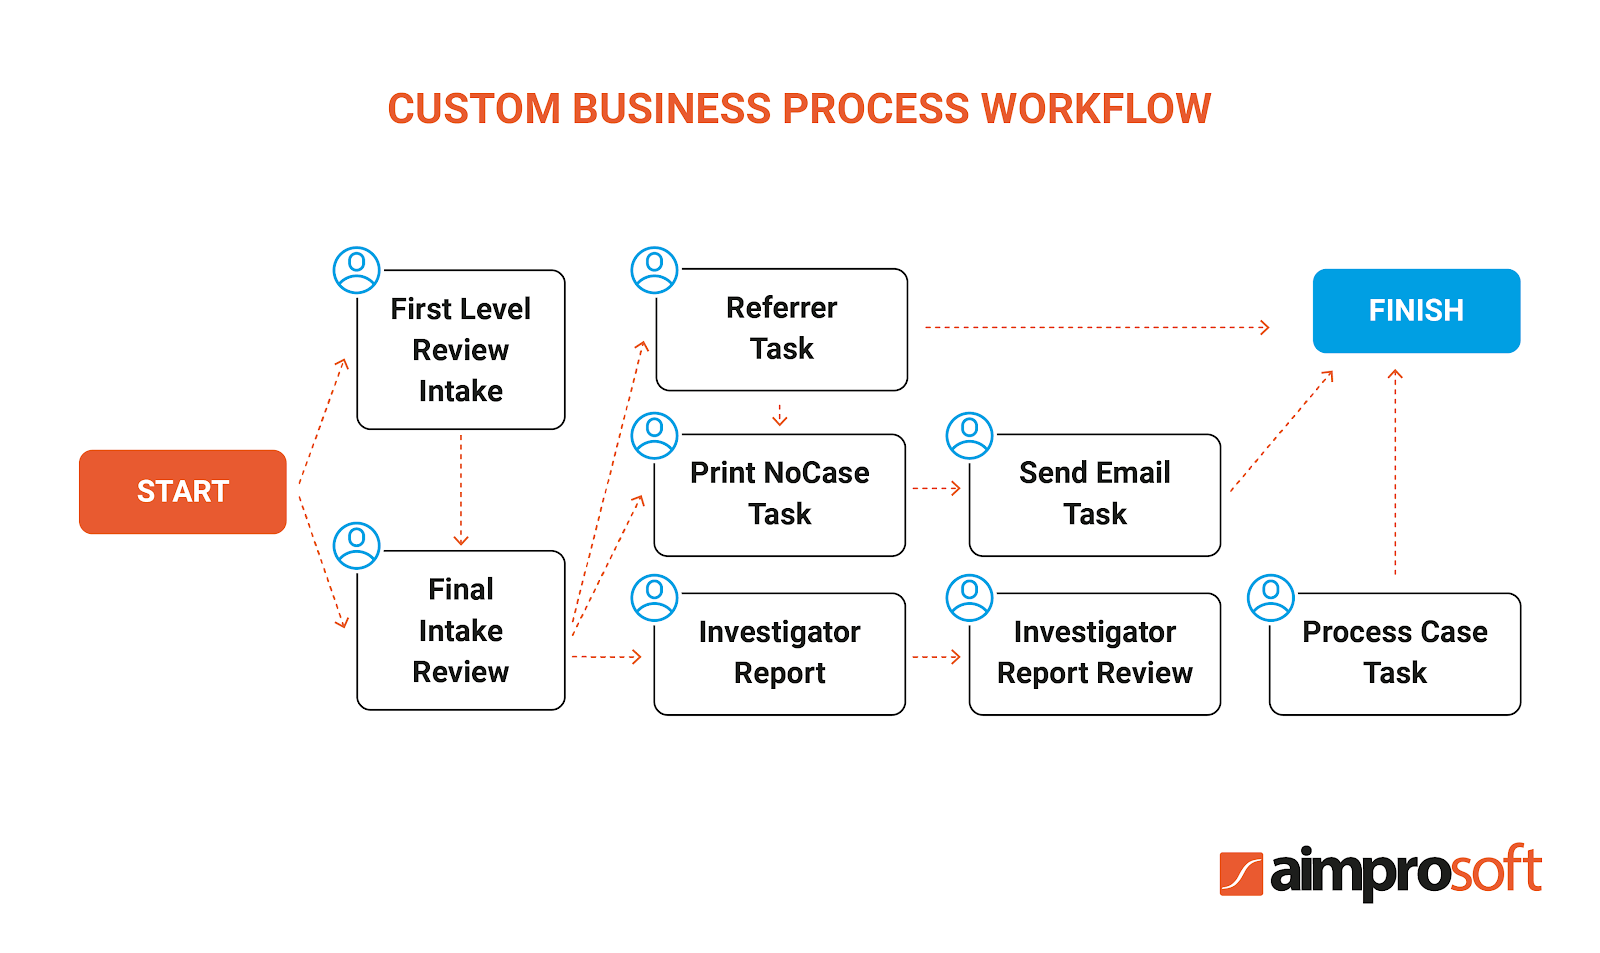 Alfresco custom business process workflow in a legal document system